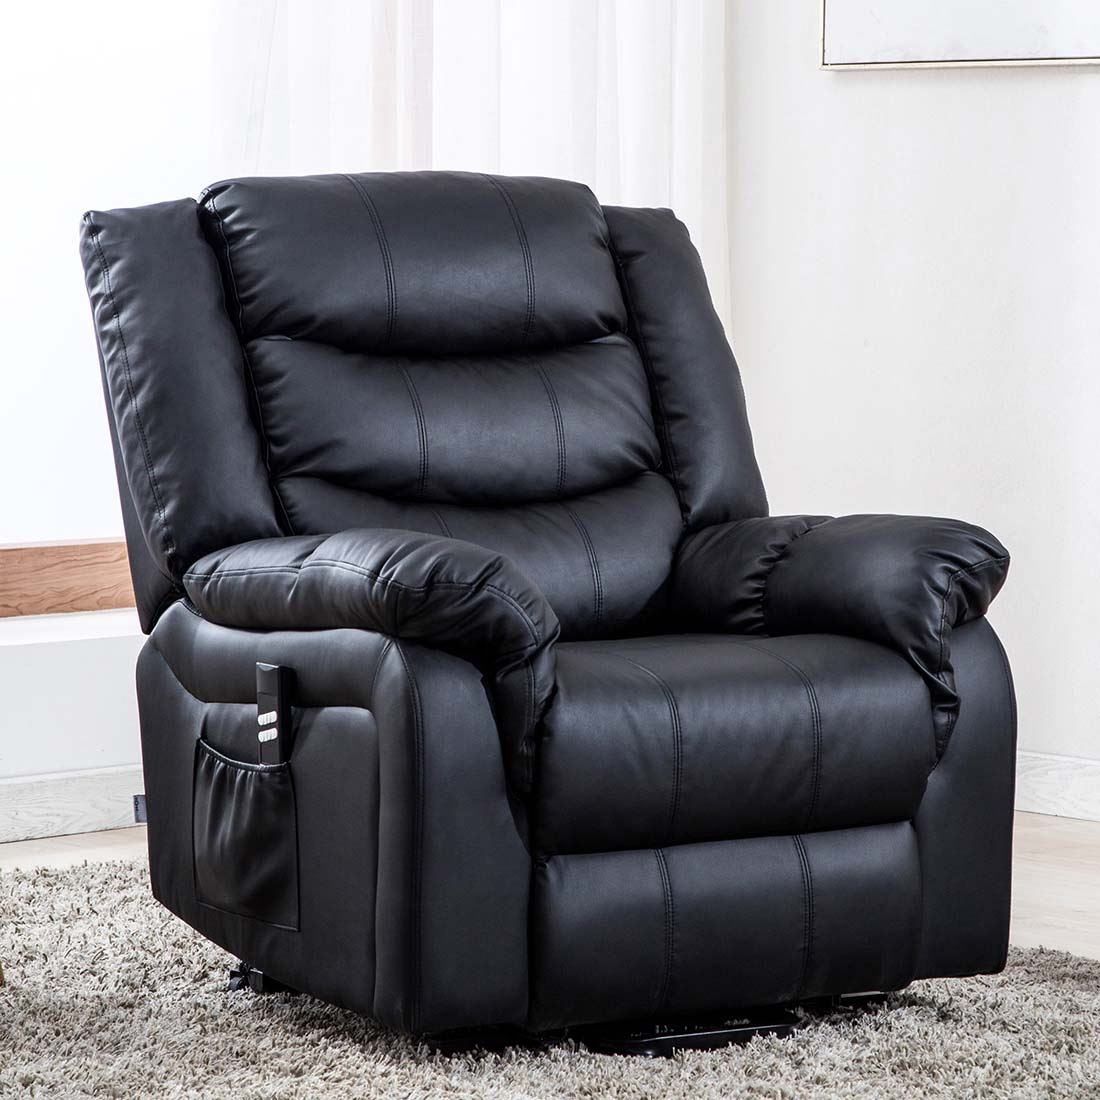 SEATTLE DUAL MOTOR RISER RECLINER BONDED LEATHER ARMCHAIR ...